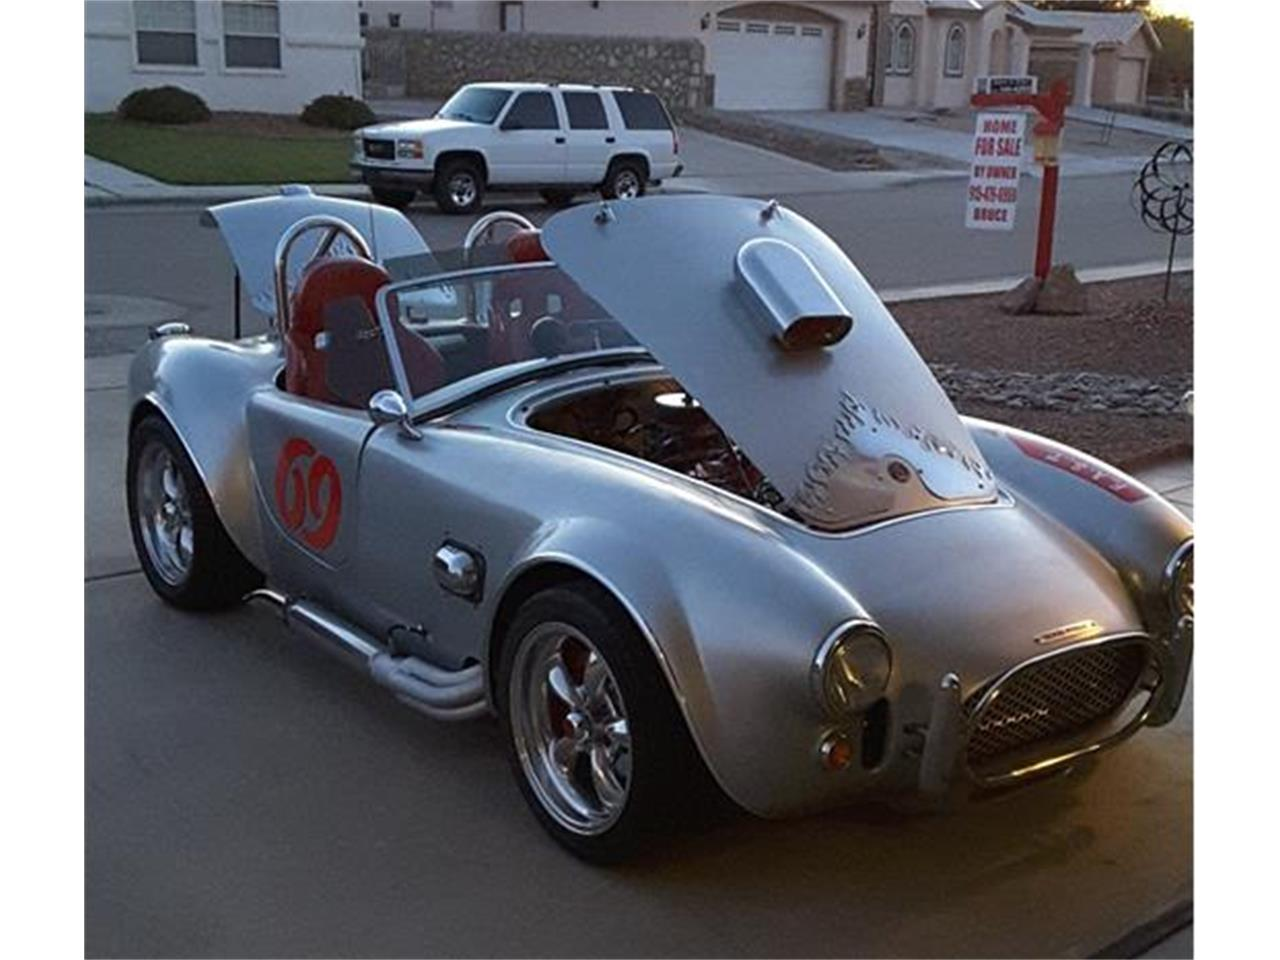 Factory Five Cobra For Sale >> 1965 Factory Five Cobra For Sale In Cantillo Tx